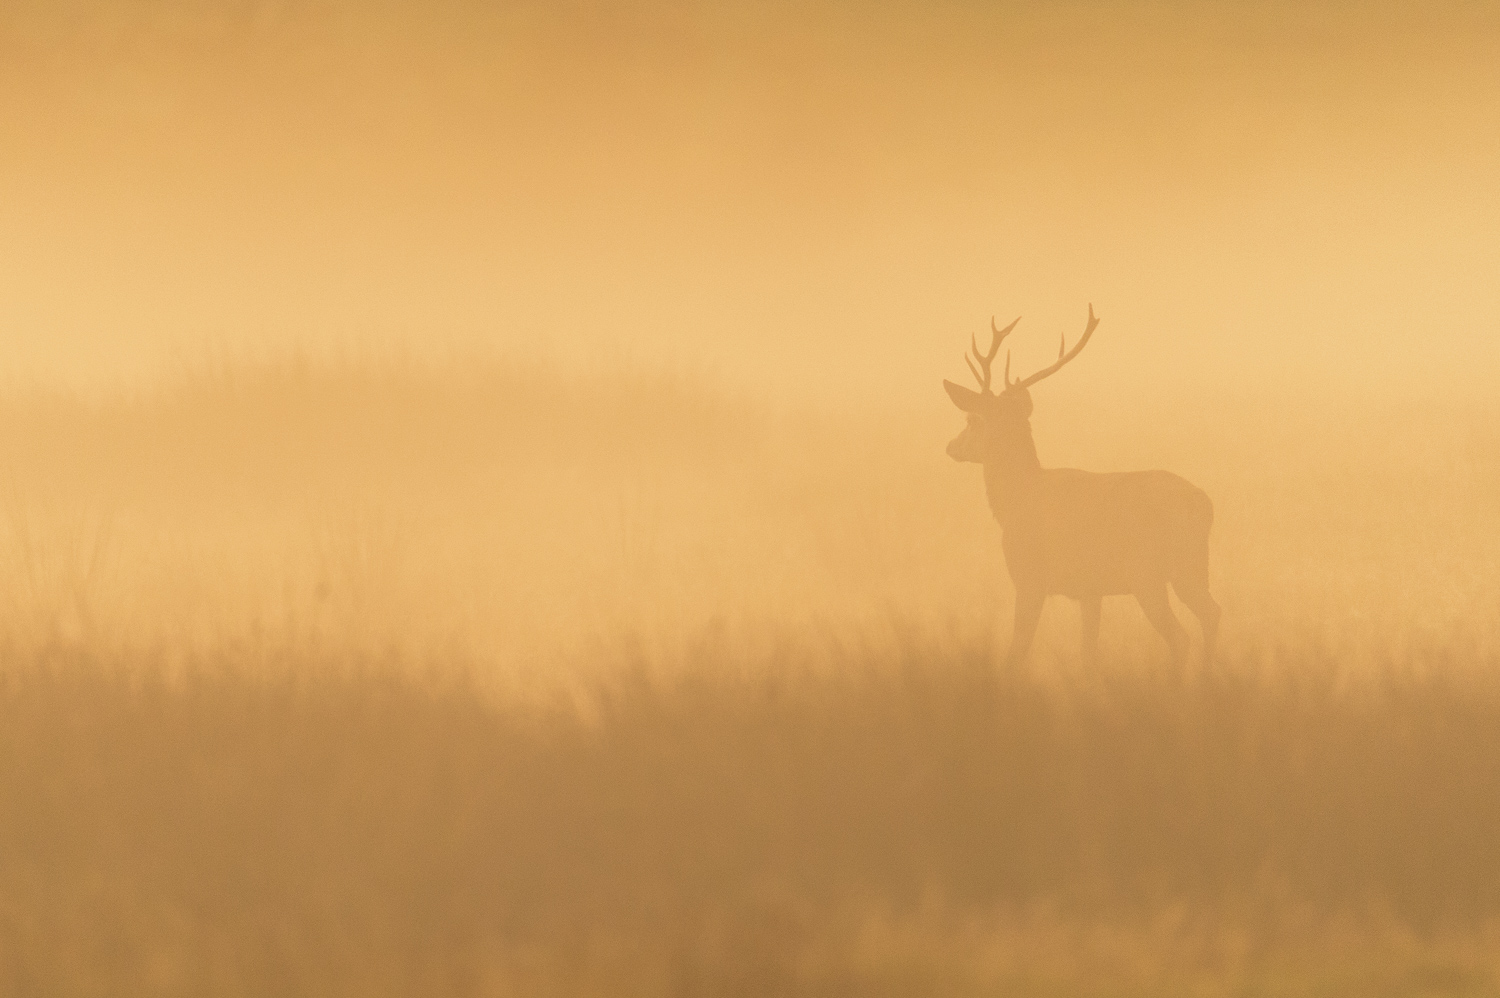 Misty Stag